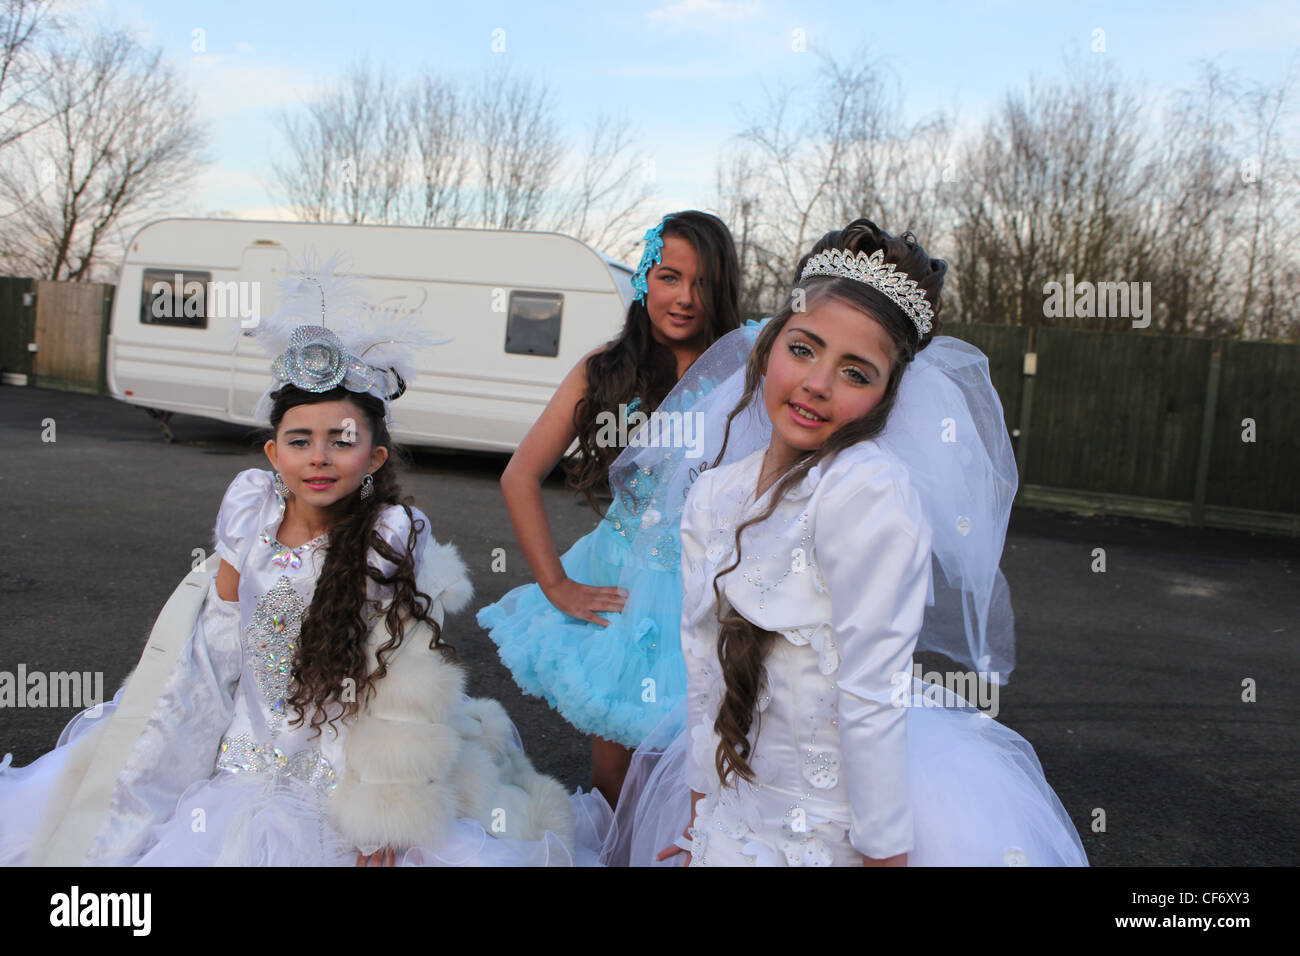 Irish Travellers Girls on a Gypsy site in St Albans, dressed in Holy ...